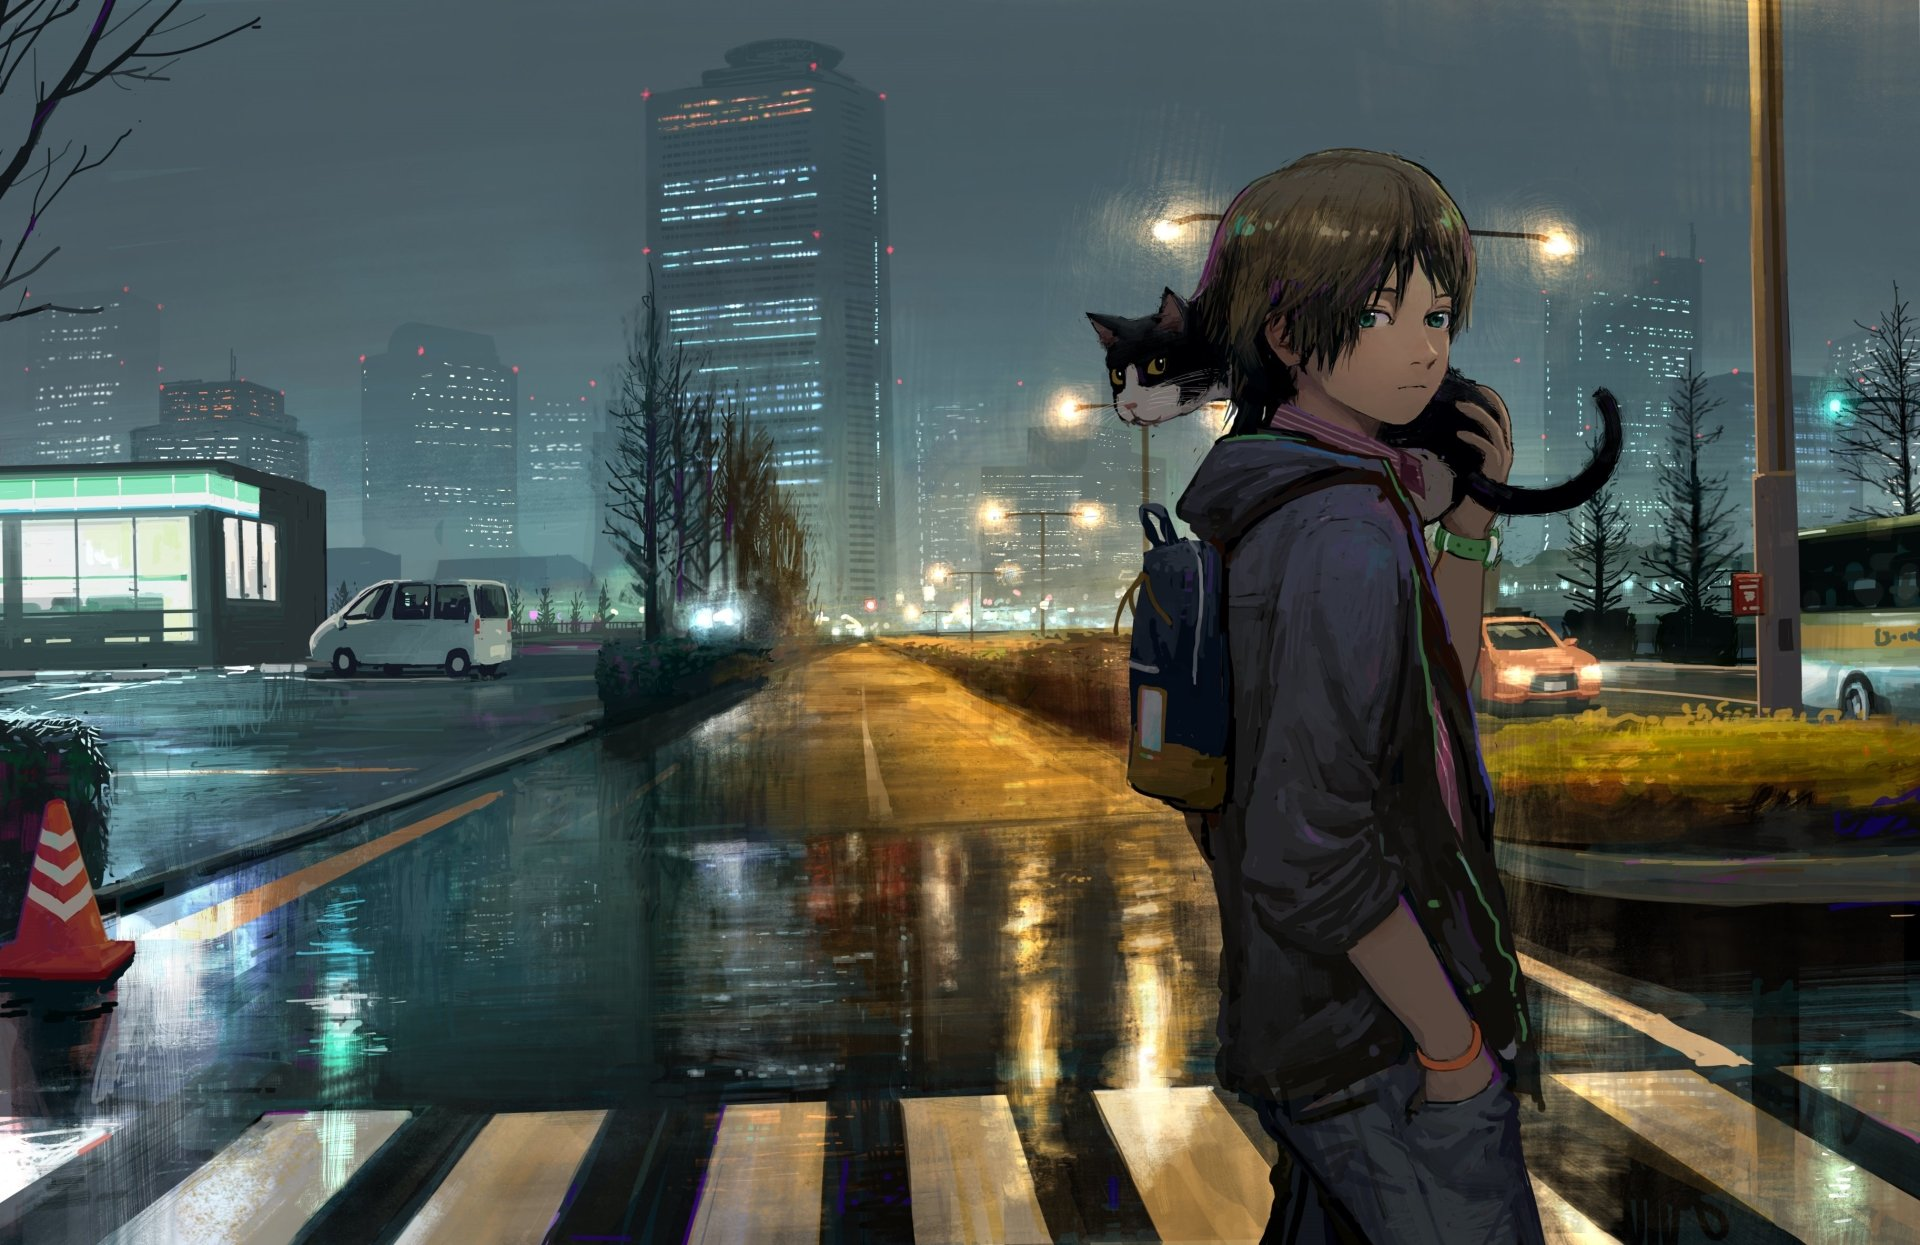 Original hd wallpaper background image 3650x2366 id - Anime rain wallpaper ...